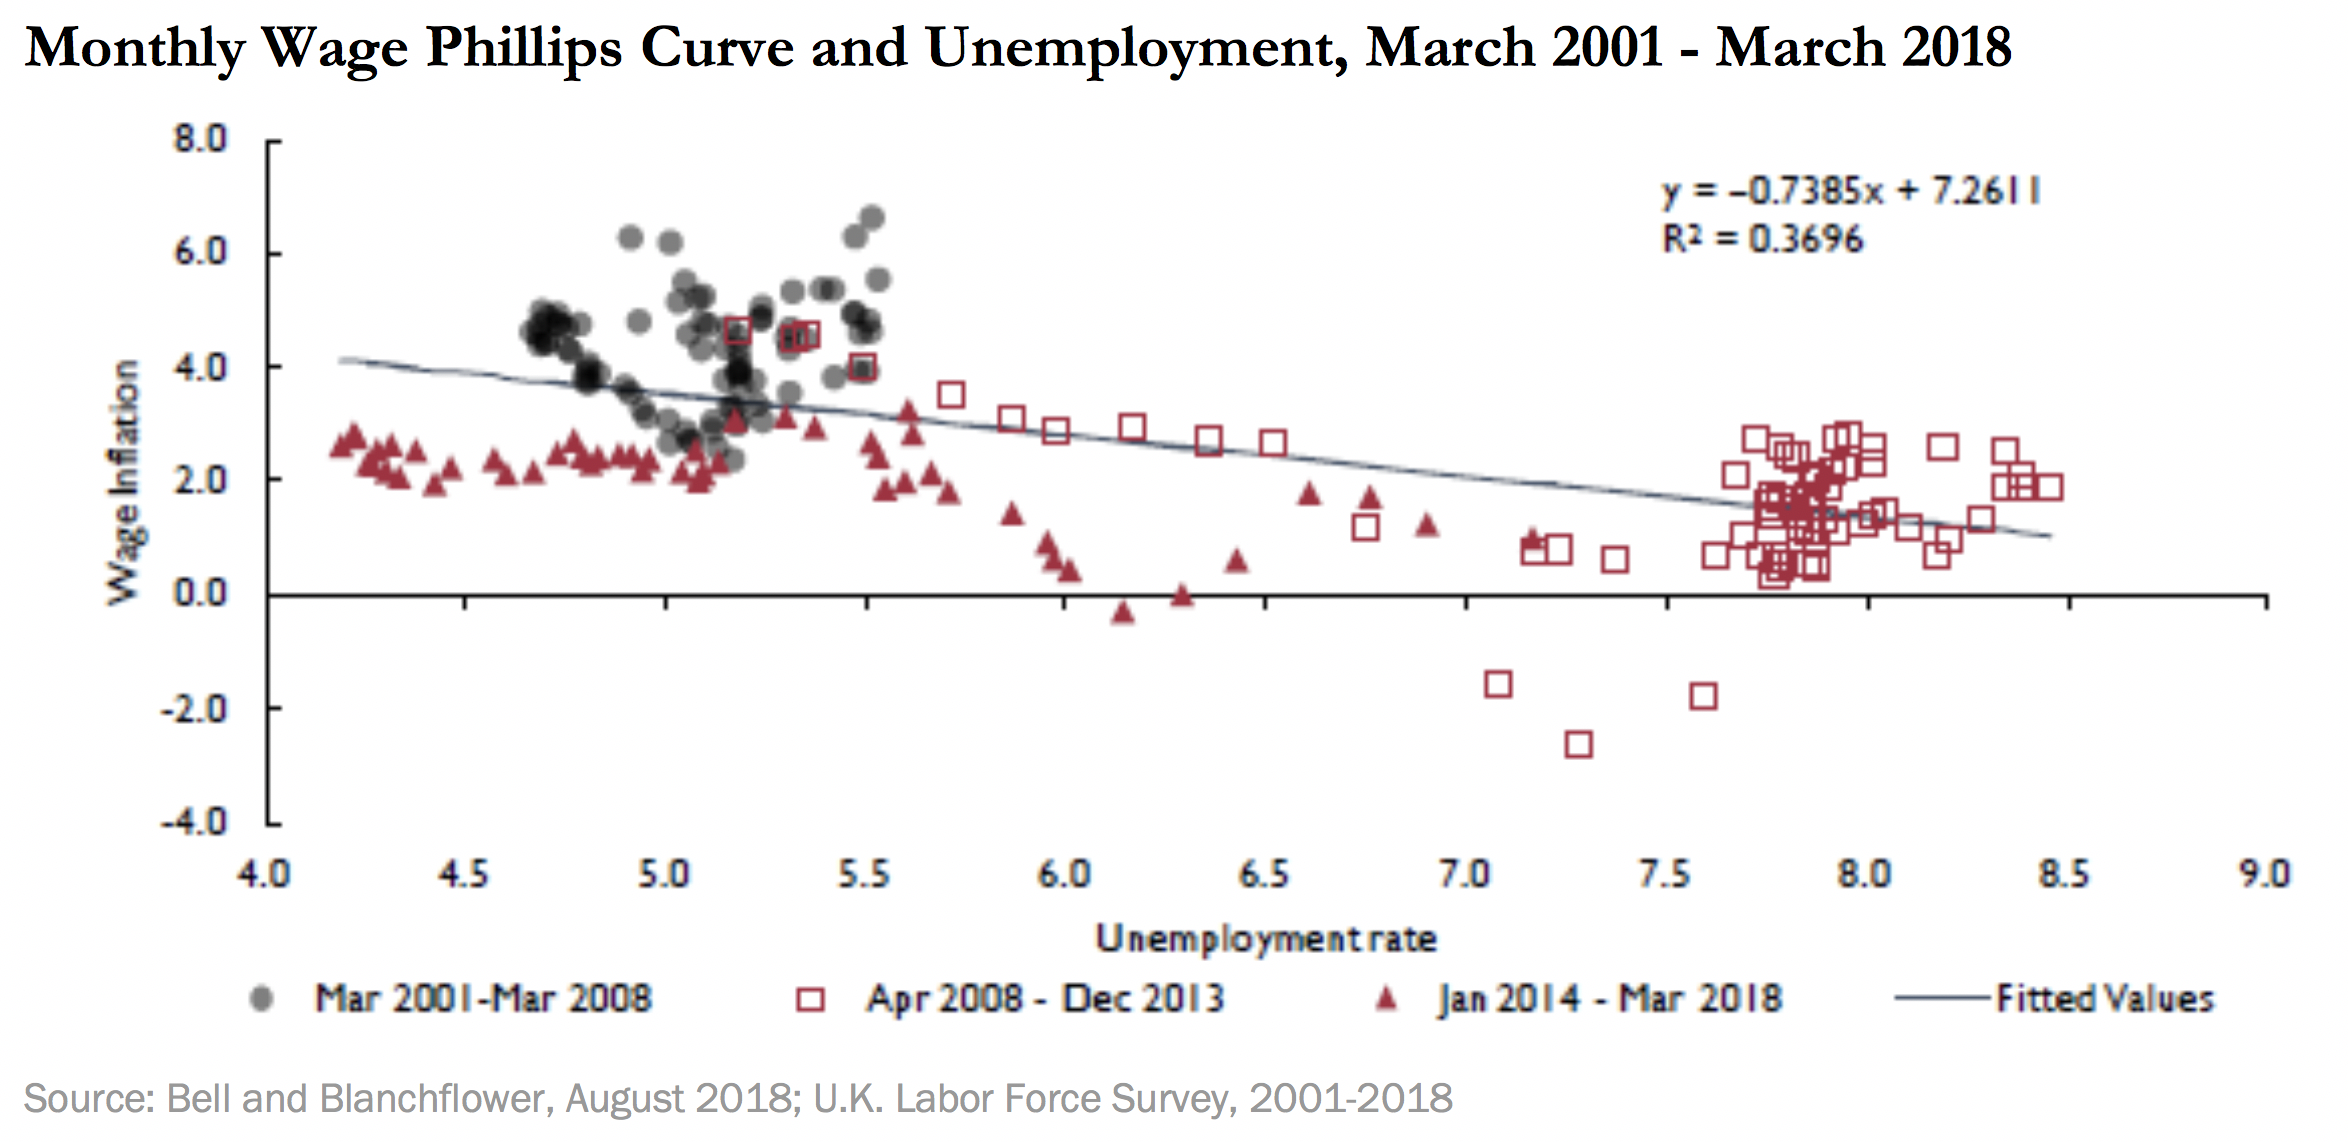 Monthly Wage Phillips Curve and Unemployment, March 2001-March 2018